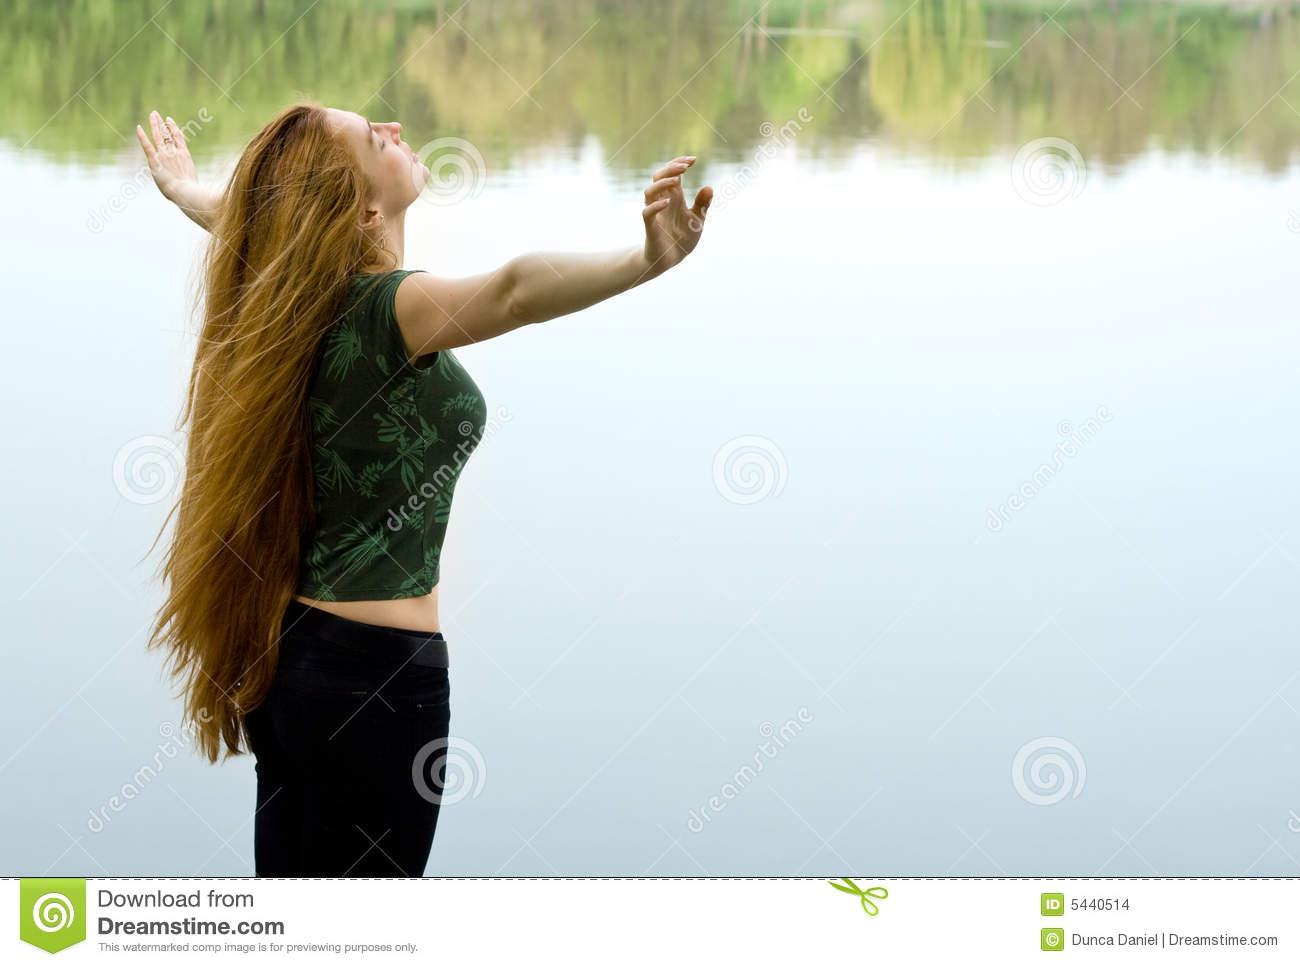 Download Freedom Concept - Woman Wanting To Fly Stock Photo - Image of emotion, beautiful: 5440514